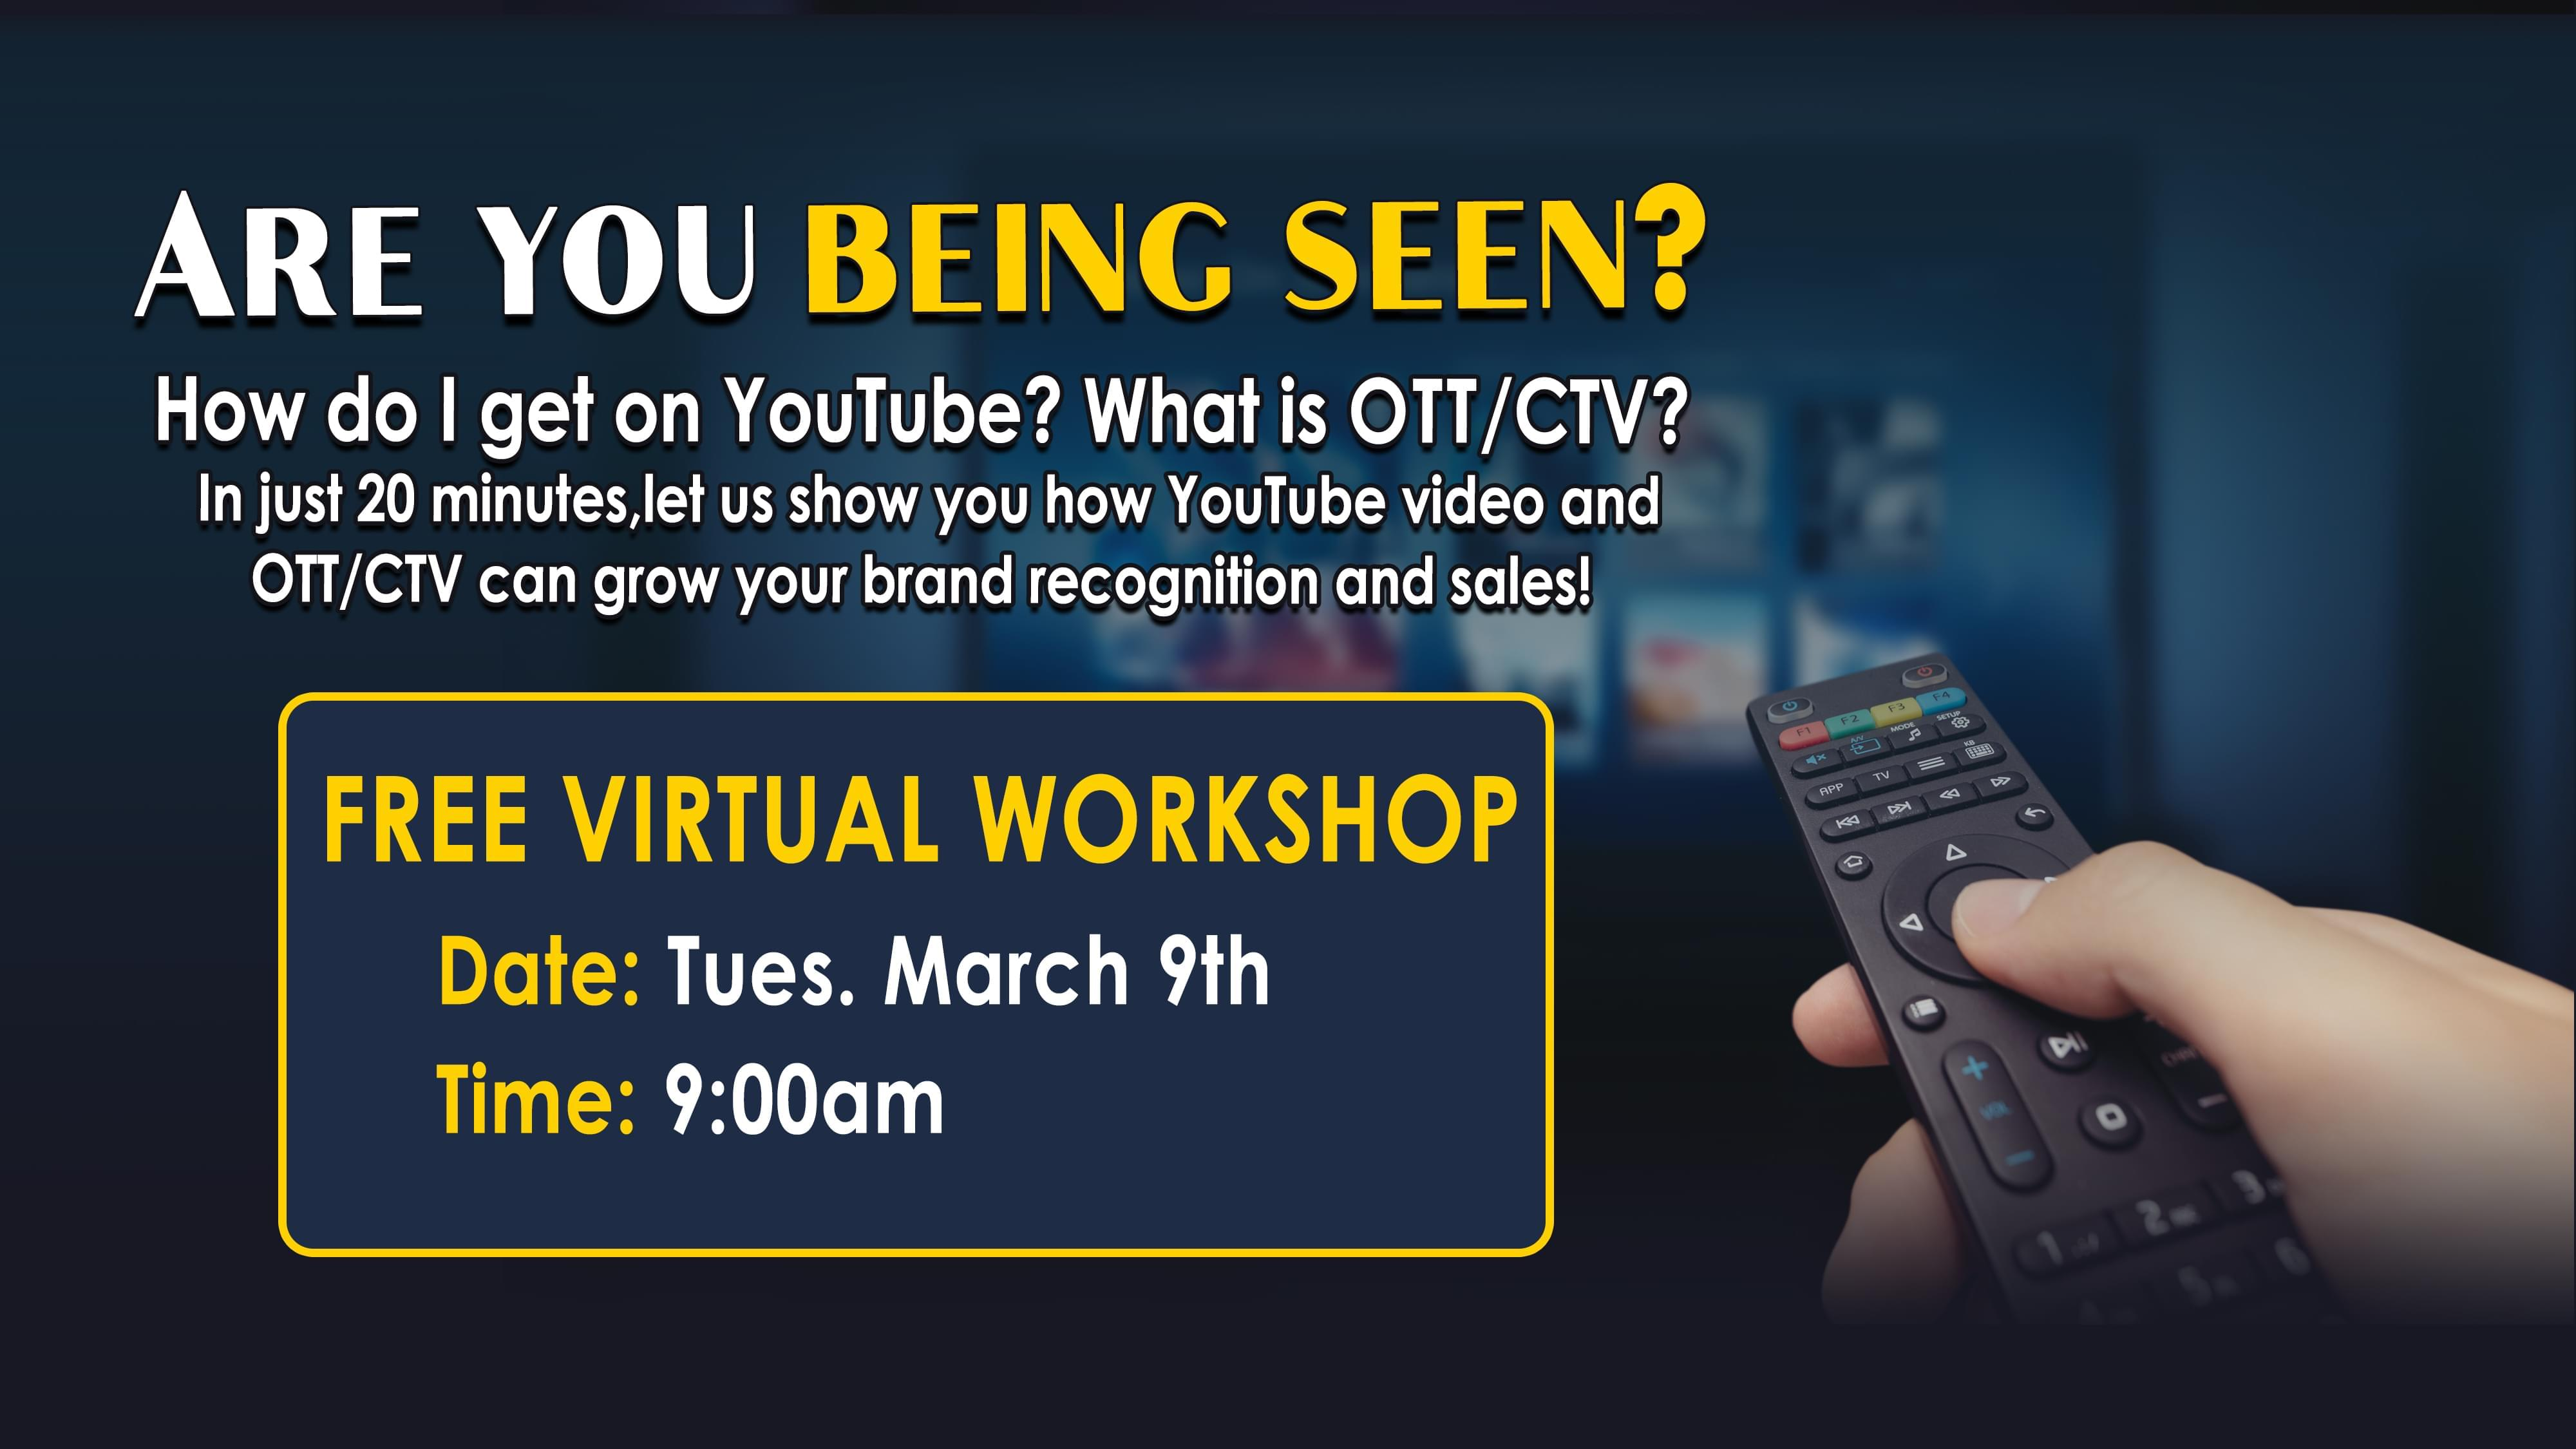 FREE Virtual Workshop